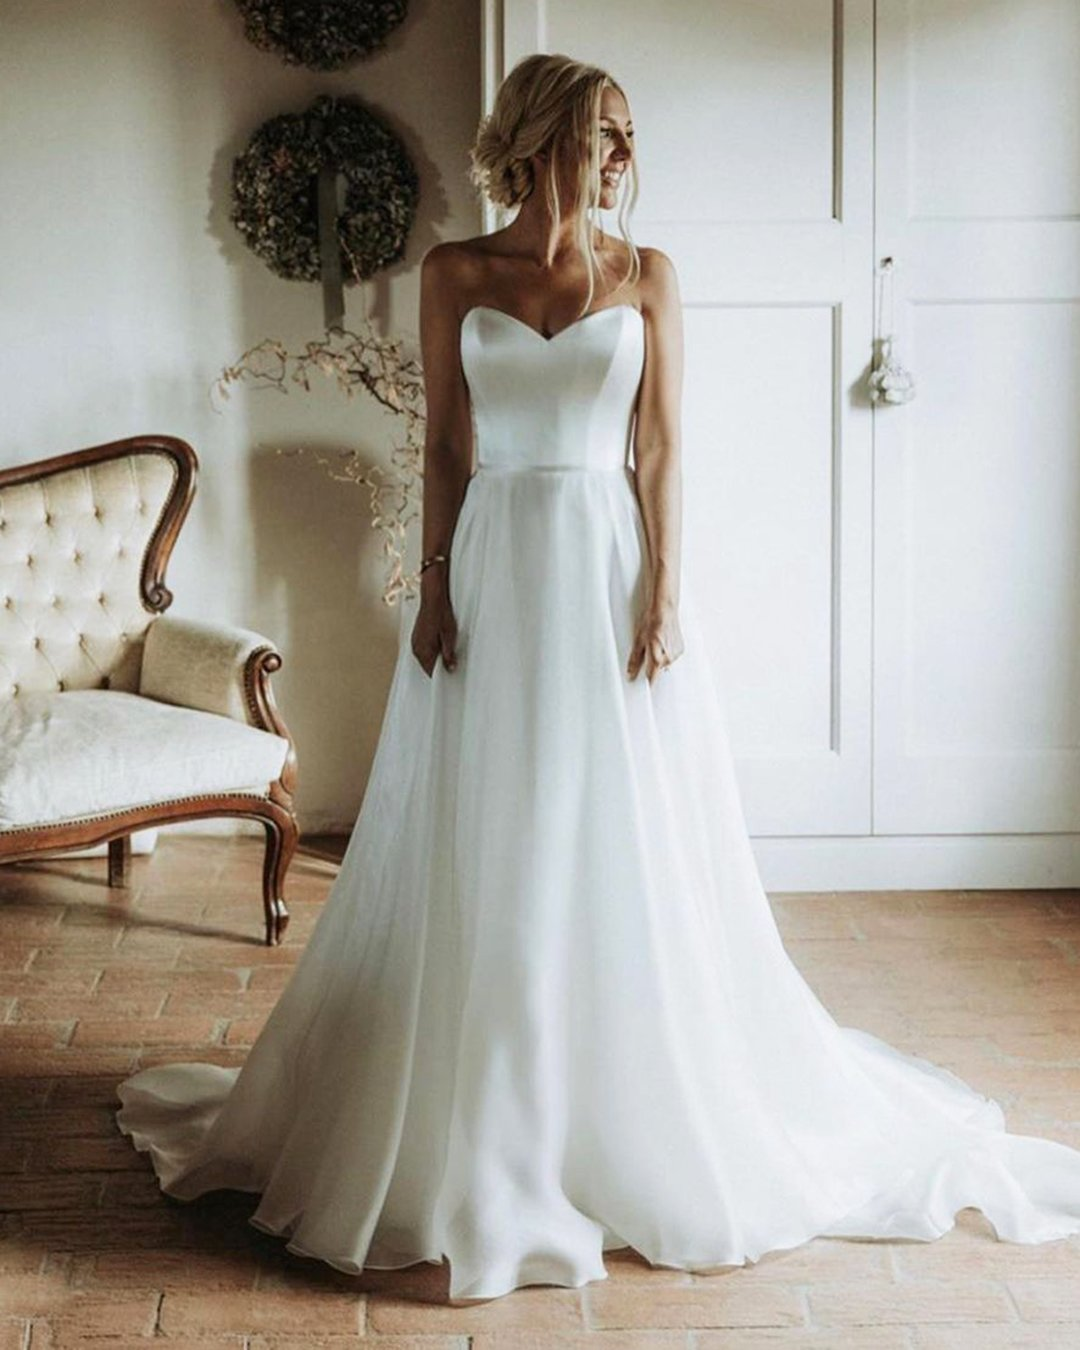 best wedding dresses a line sweetheart strapless neckline simple suzanneneville